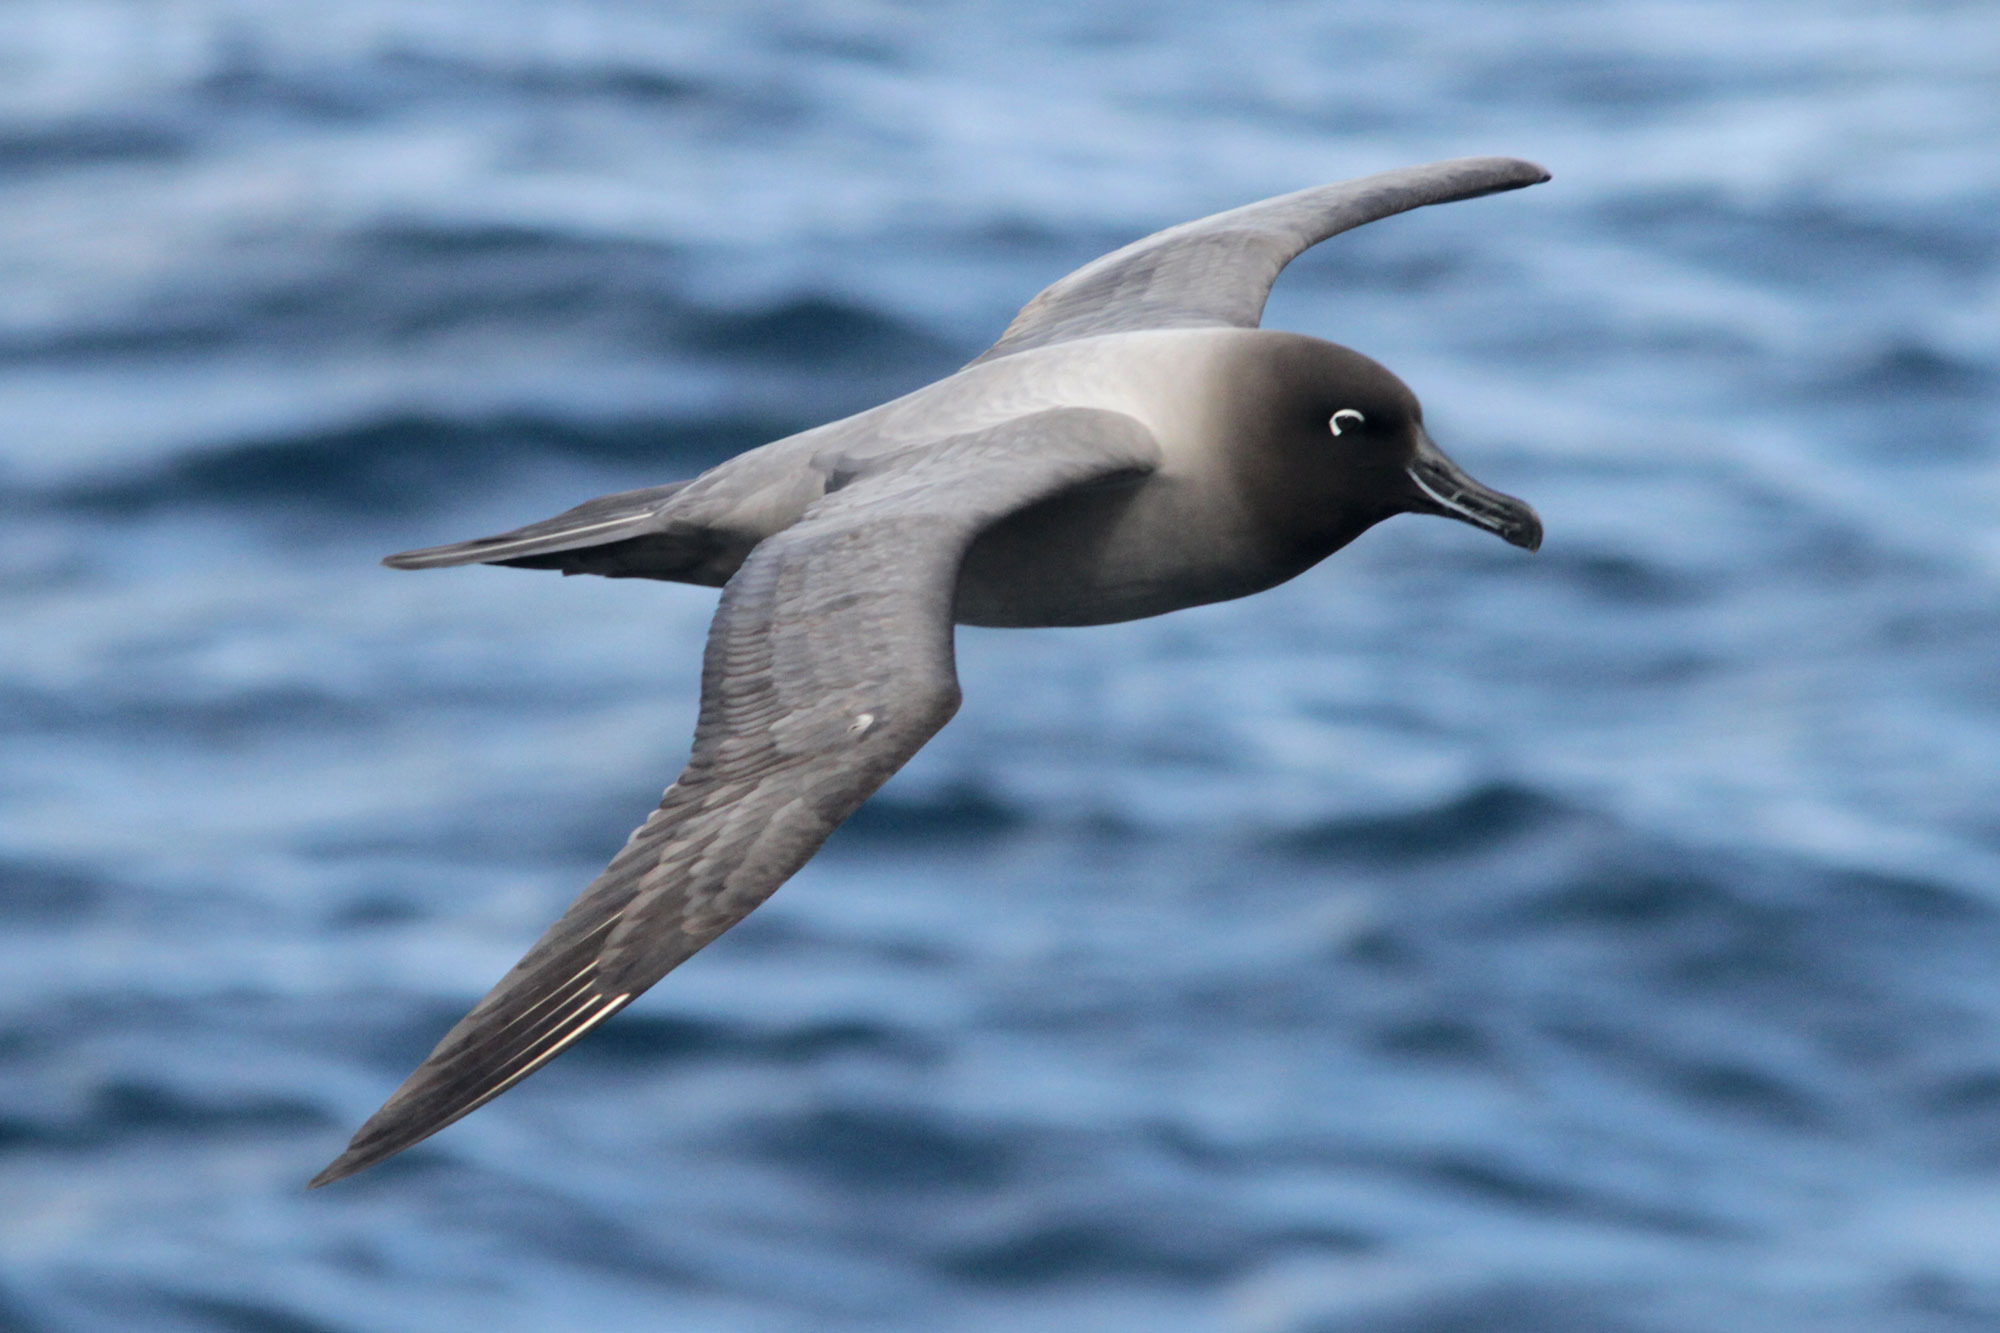 A light-mantled albatross (also known as the grey-mantled albatross or the light-mantled sooty albatross) soars over the surface of the Atlantic. Photo: Noah Strycker